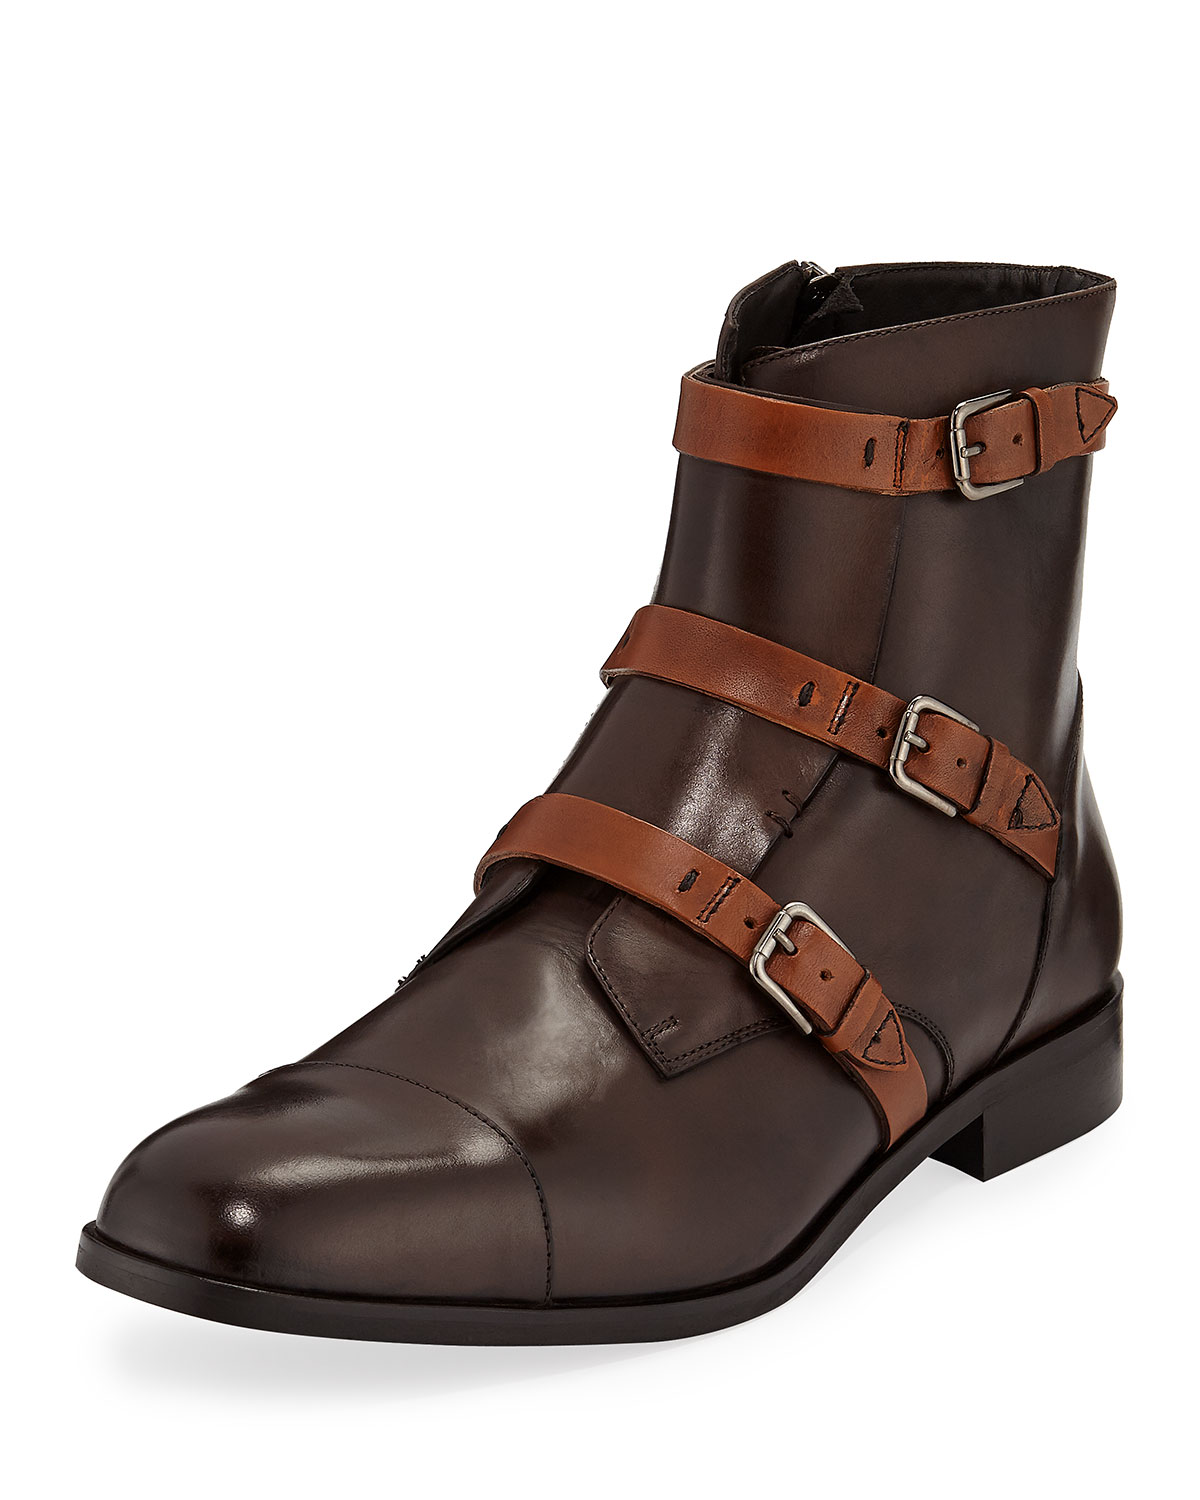 DONALD J PLINER Men'S Martino Triple-Strap Leather Boots in Chocolate